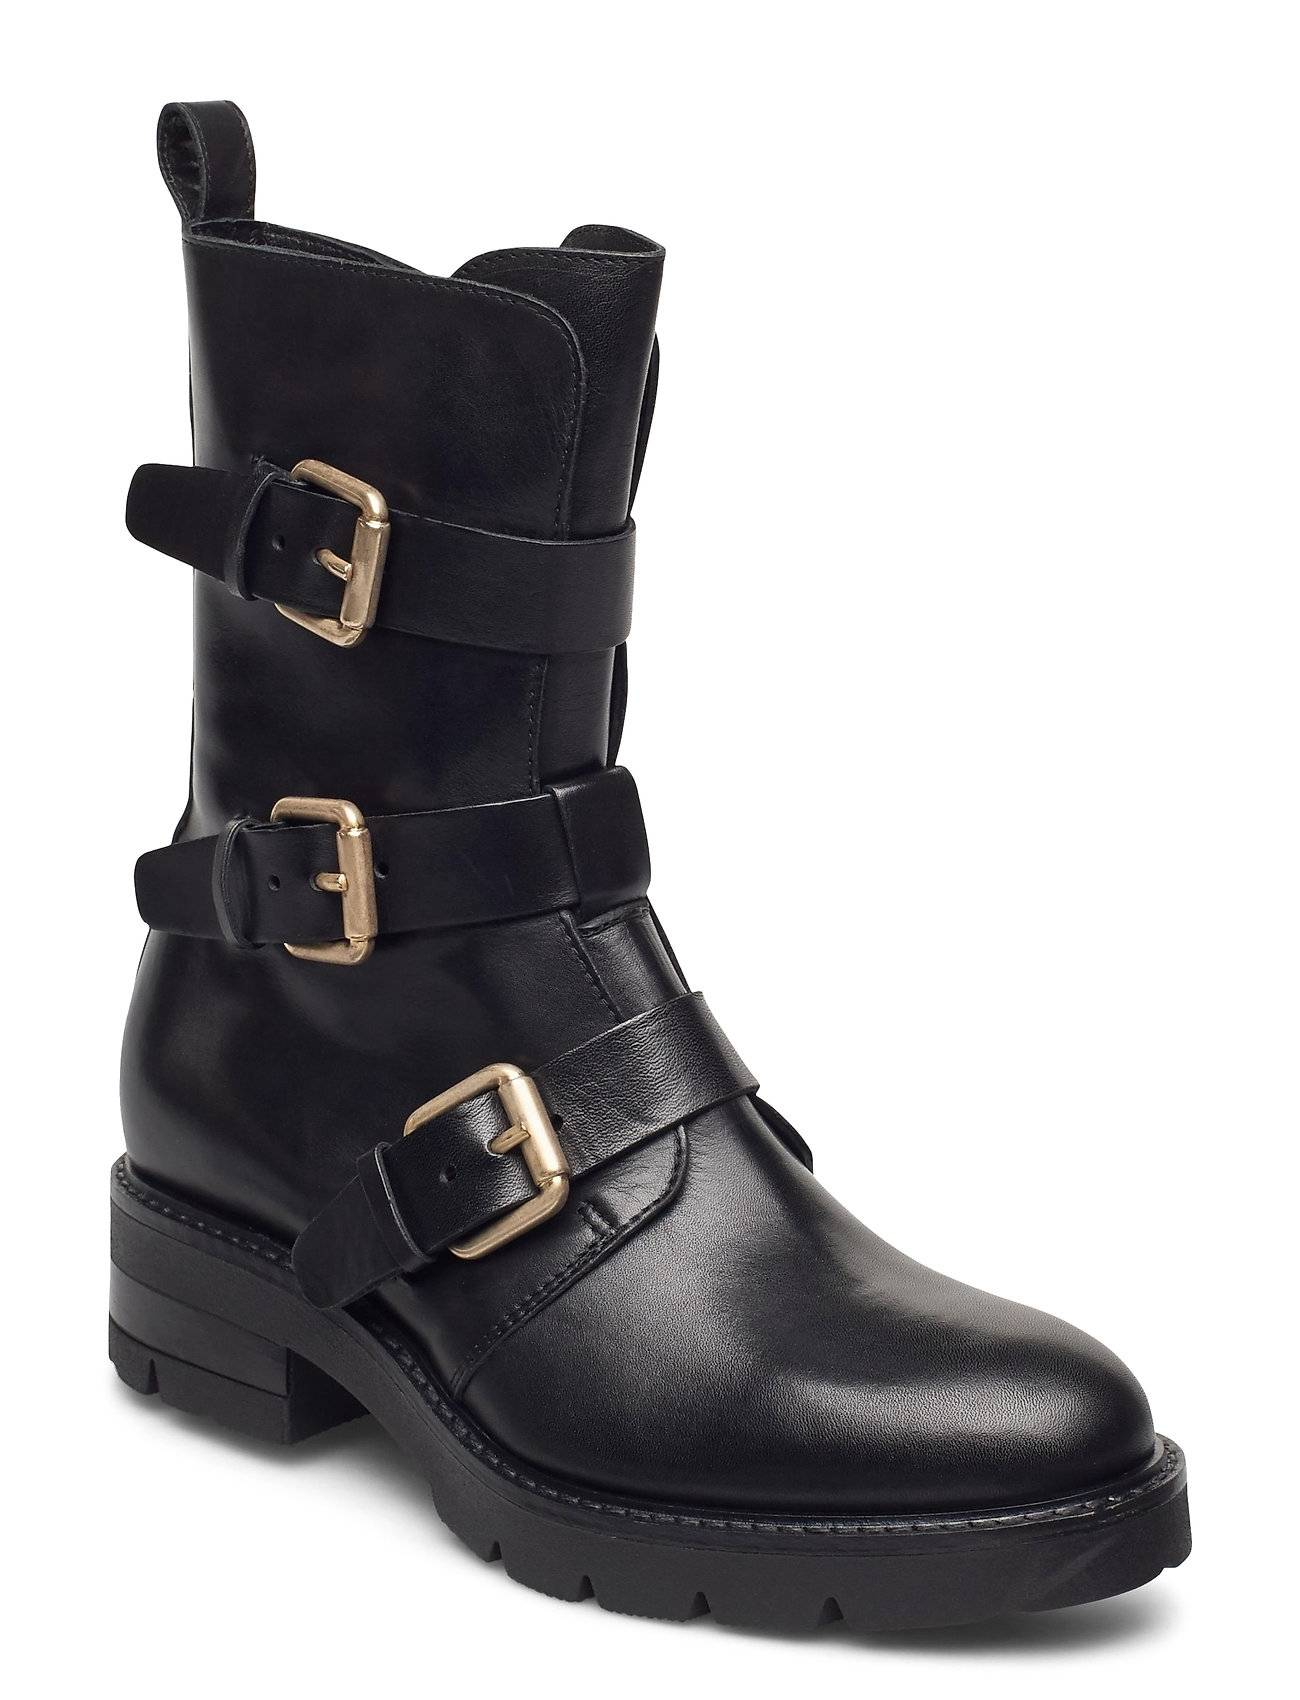 Apair Bikerboot Shoes Boots Ankle Boots Ankle Boots Flat Heel Musta Apair